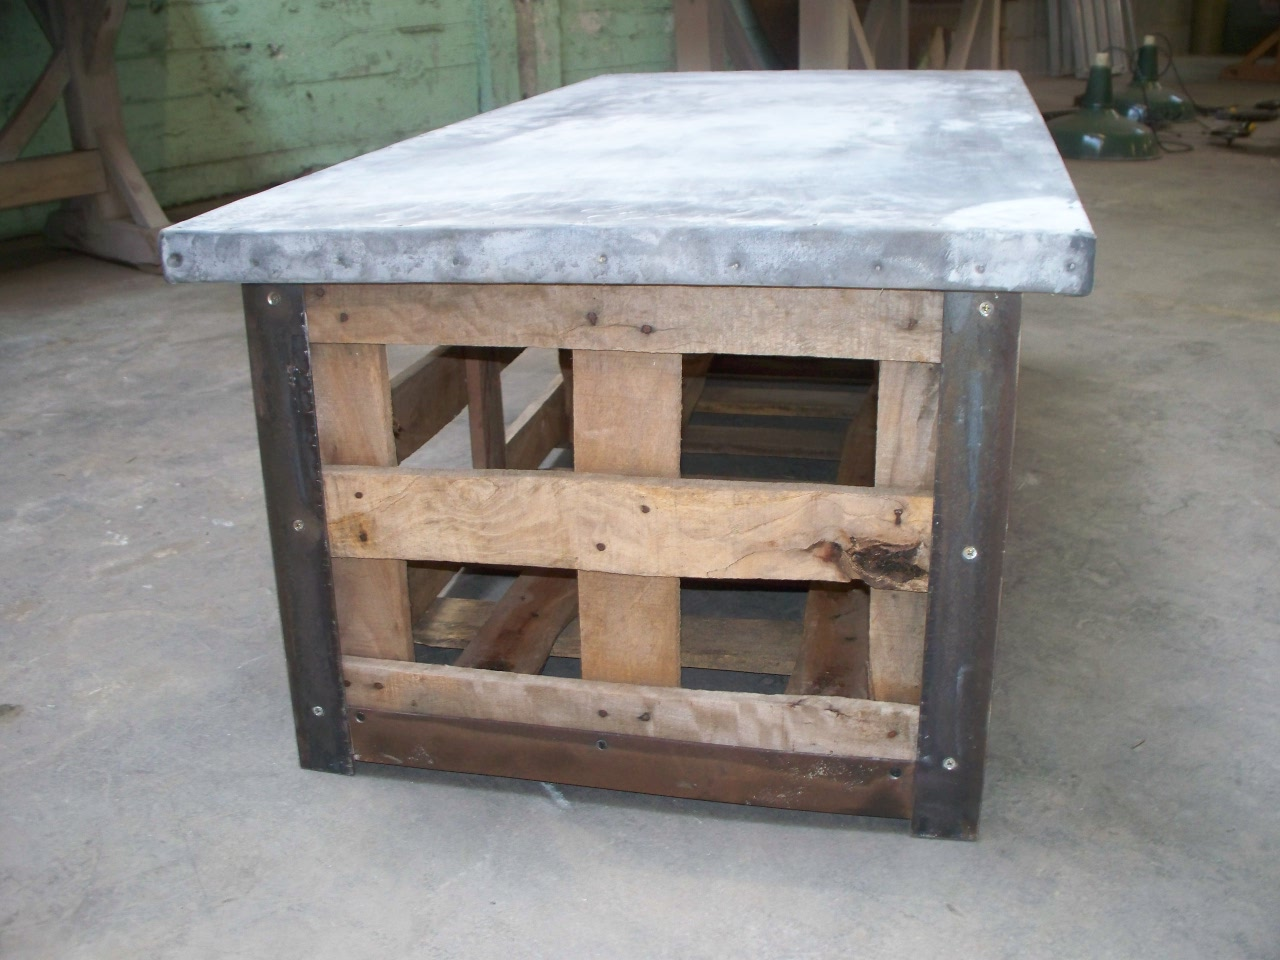 shipping crate coffee table | davelennard